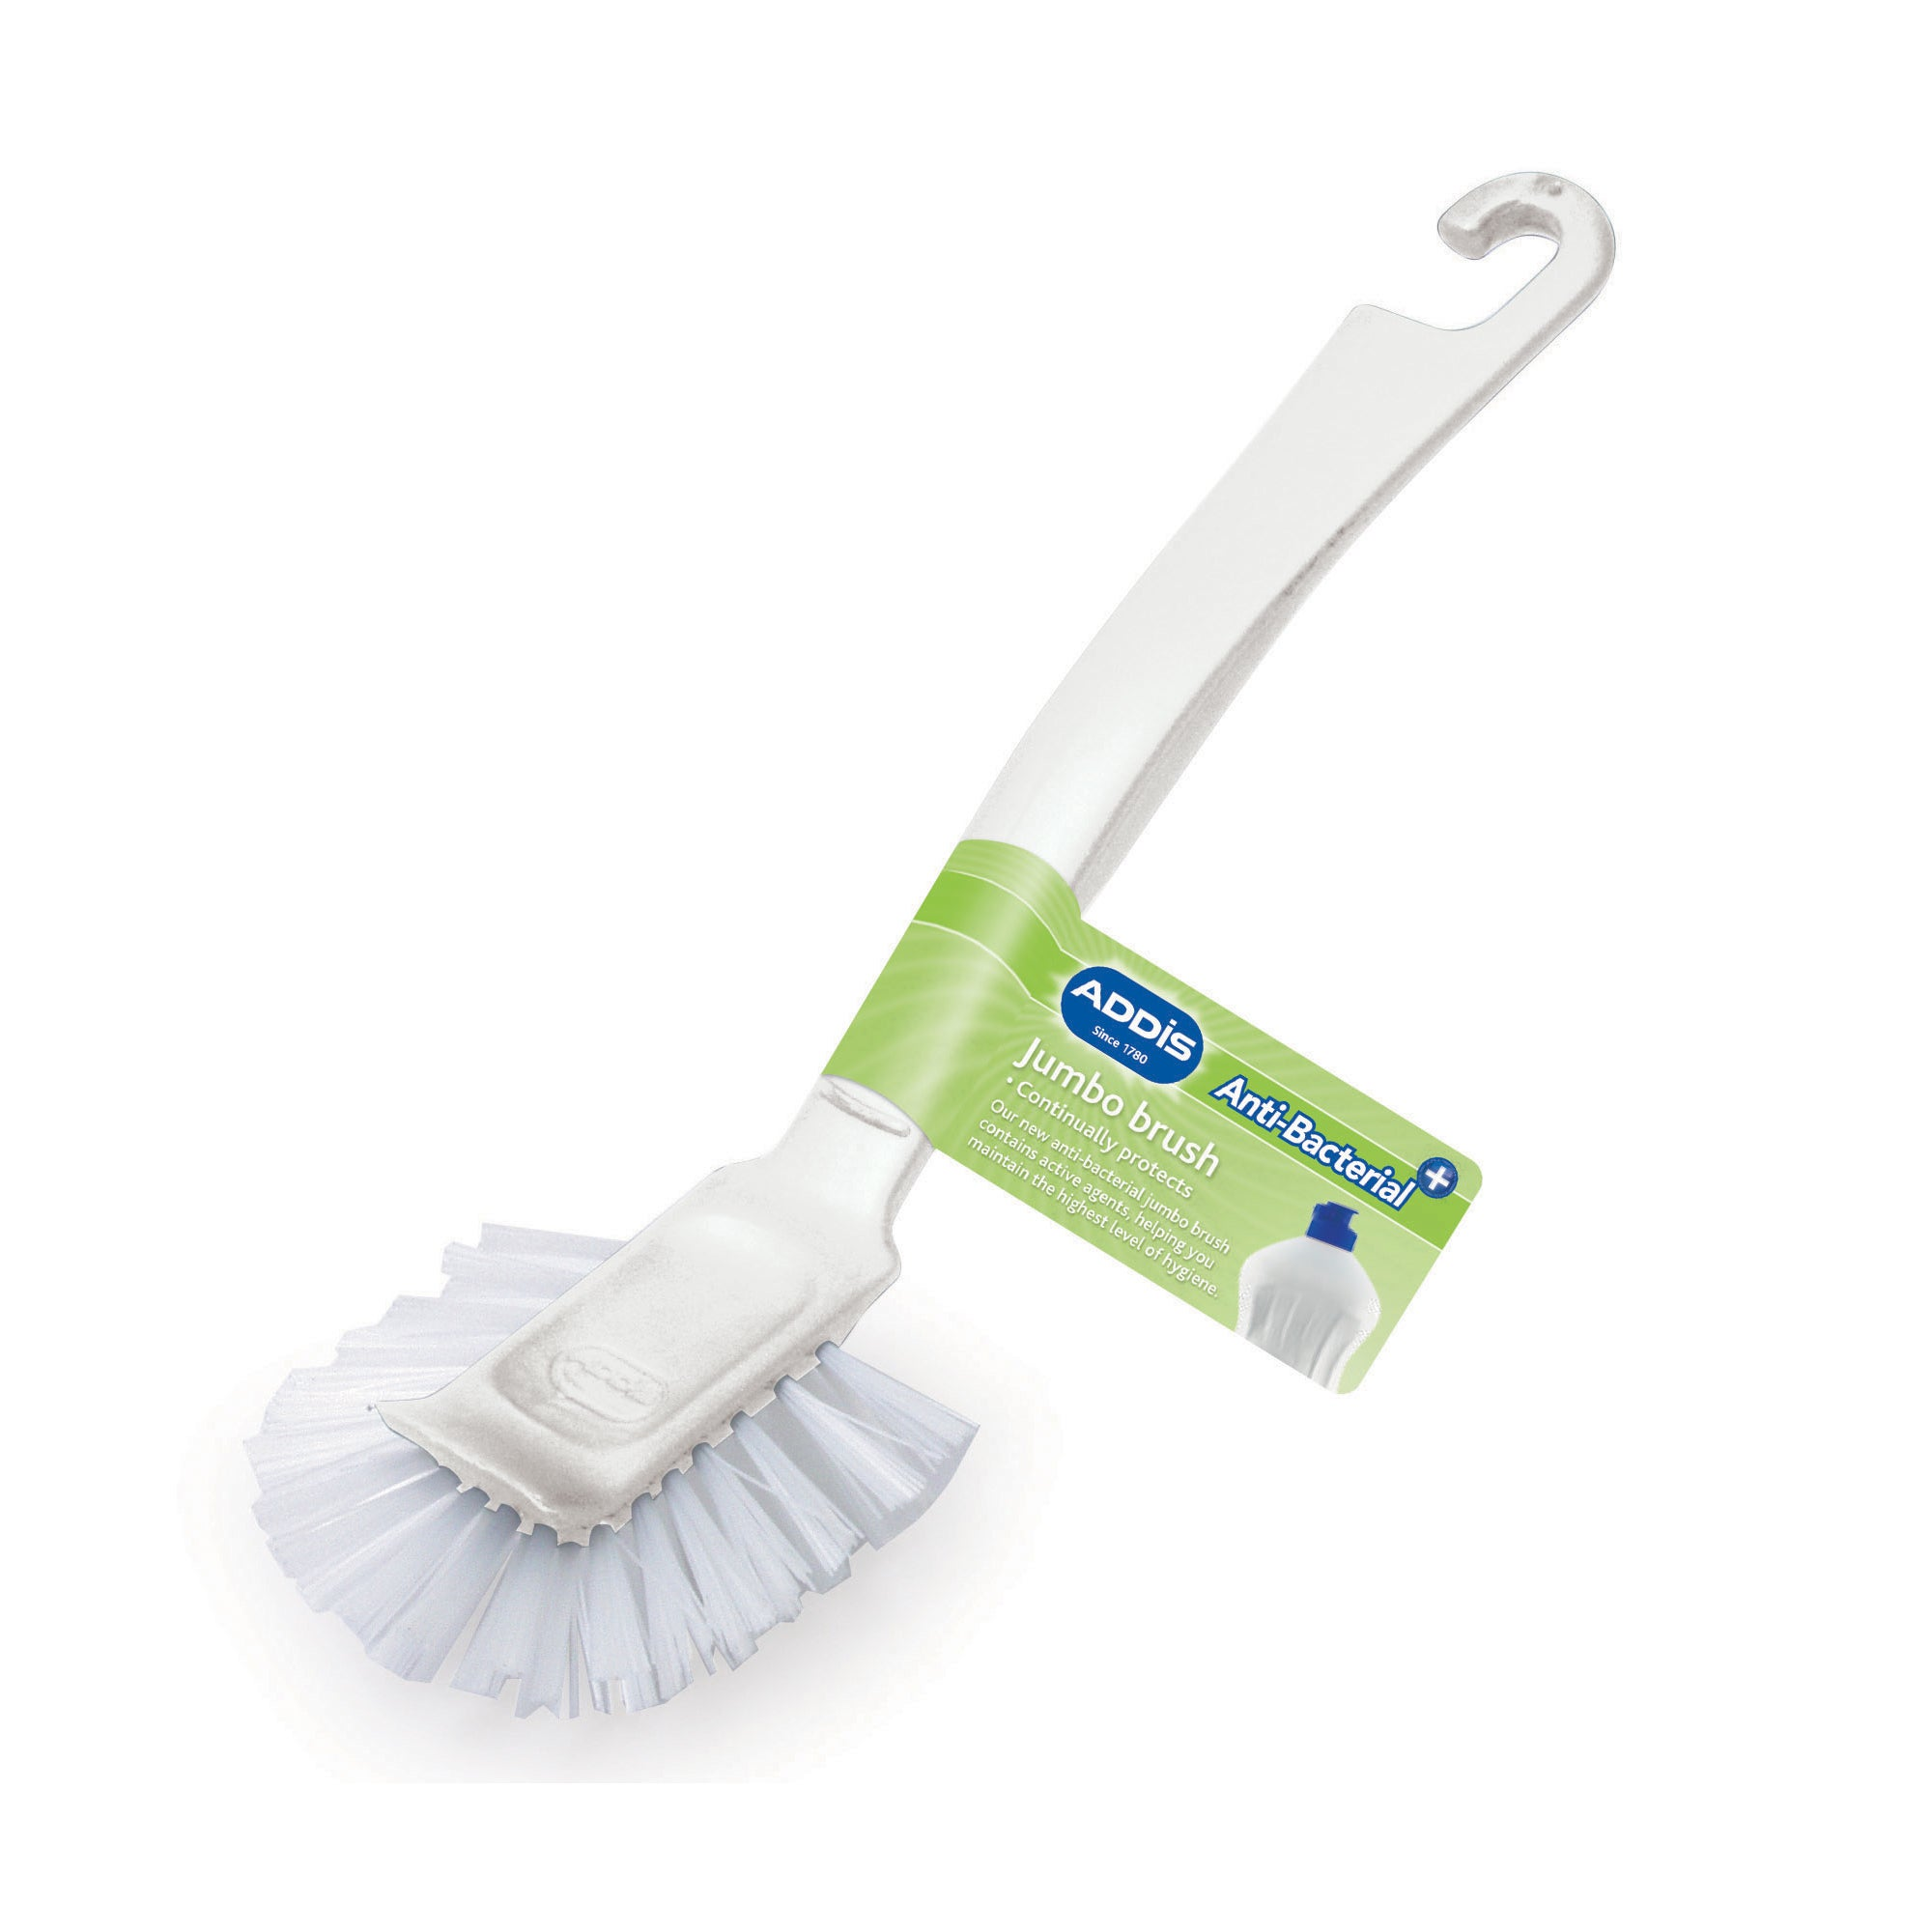 Addis Anti Bacterial Jumbo Brush